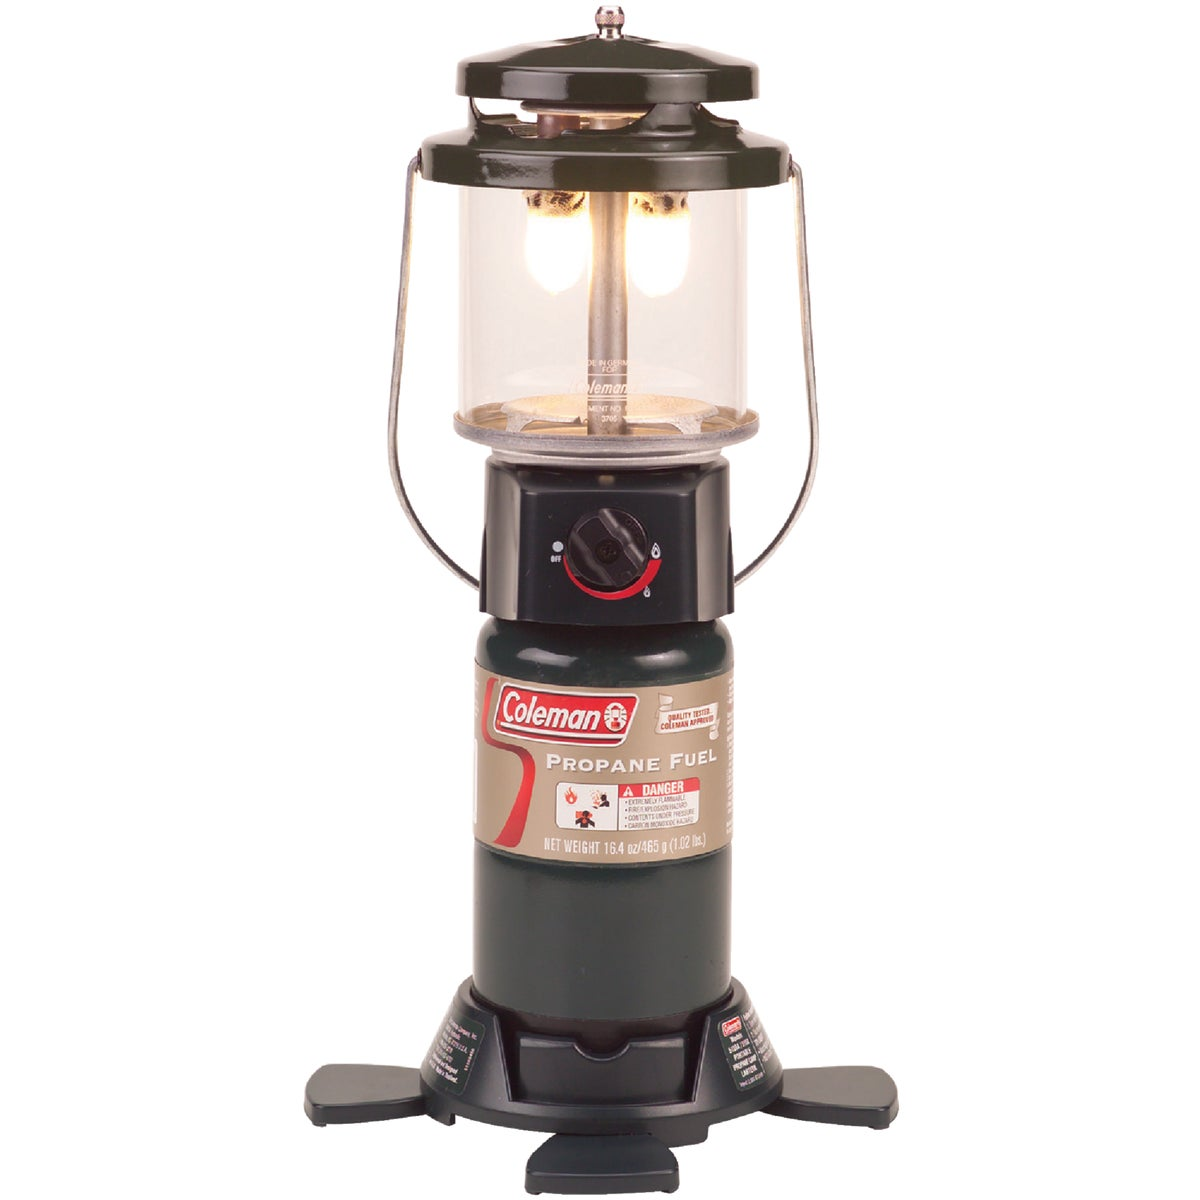 2 MANTLE PROPANE LANTERN - 2000004176 by Coleman